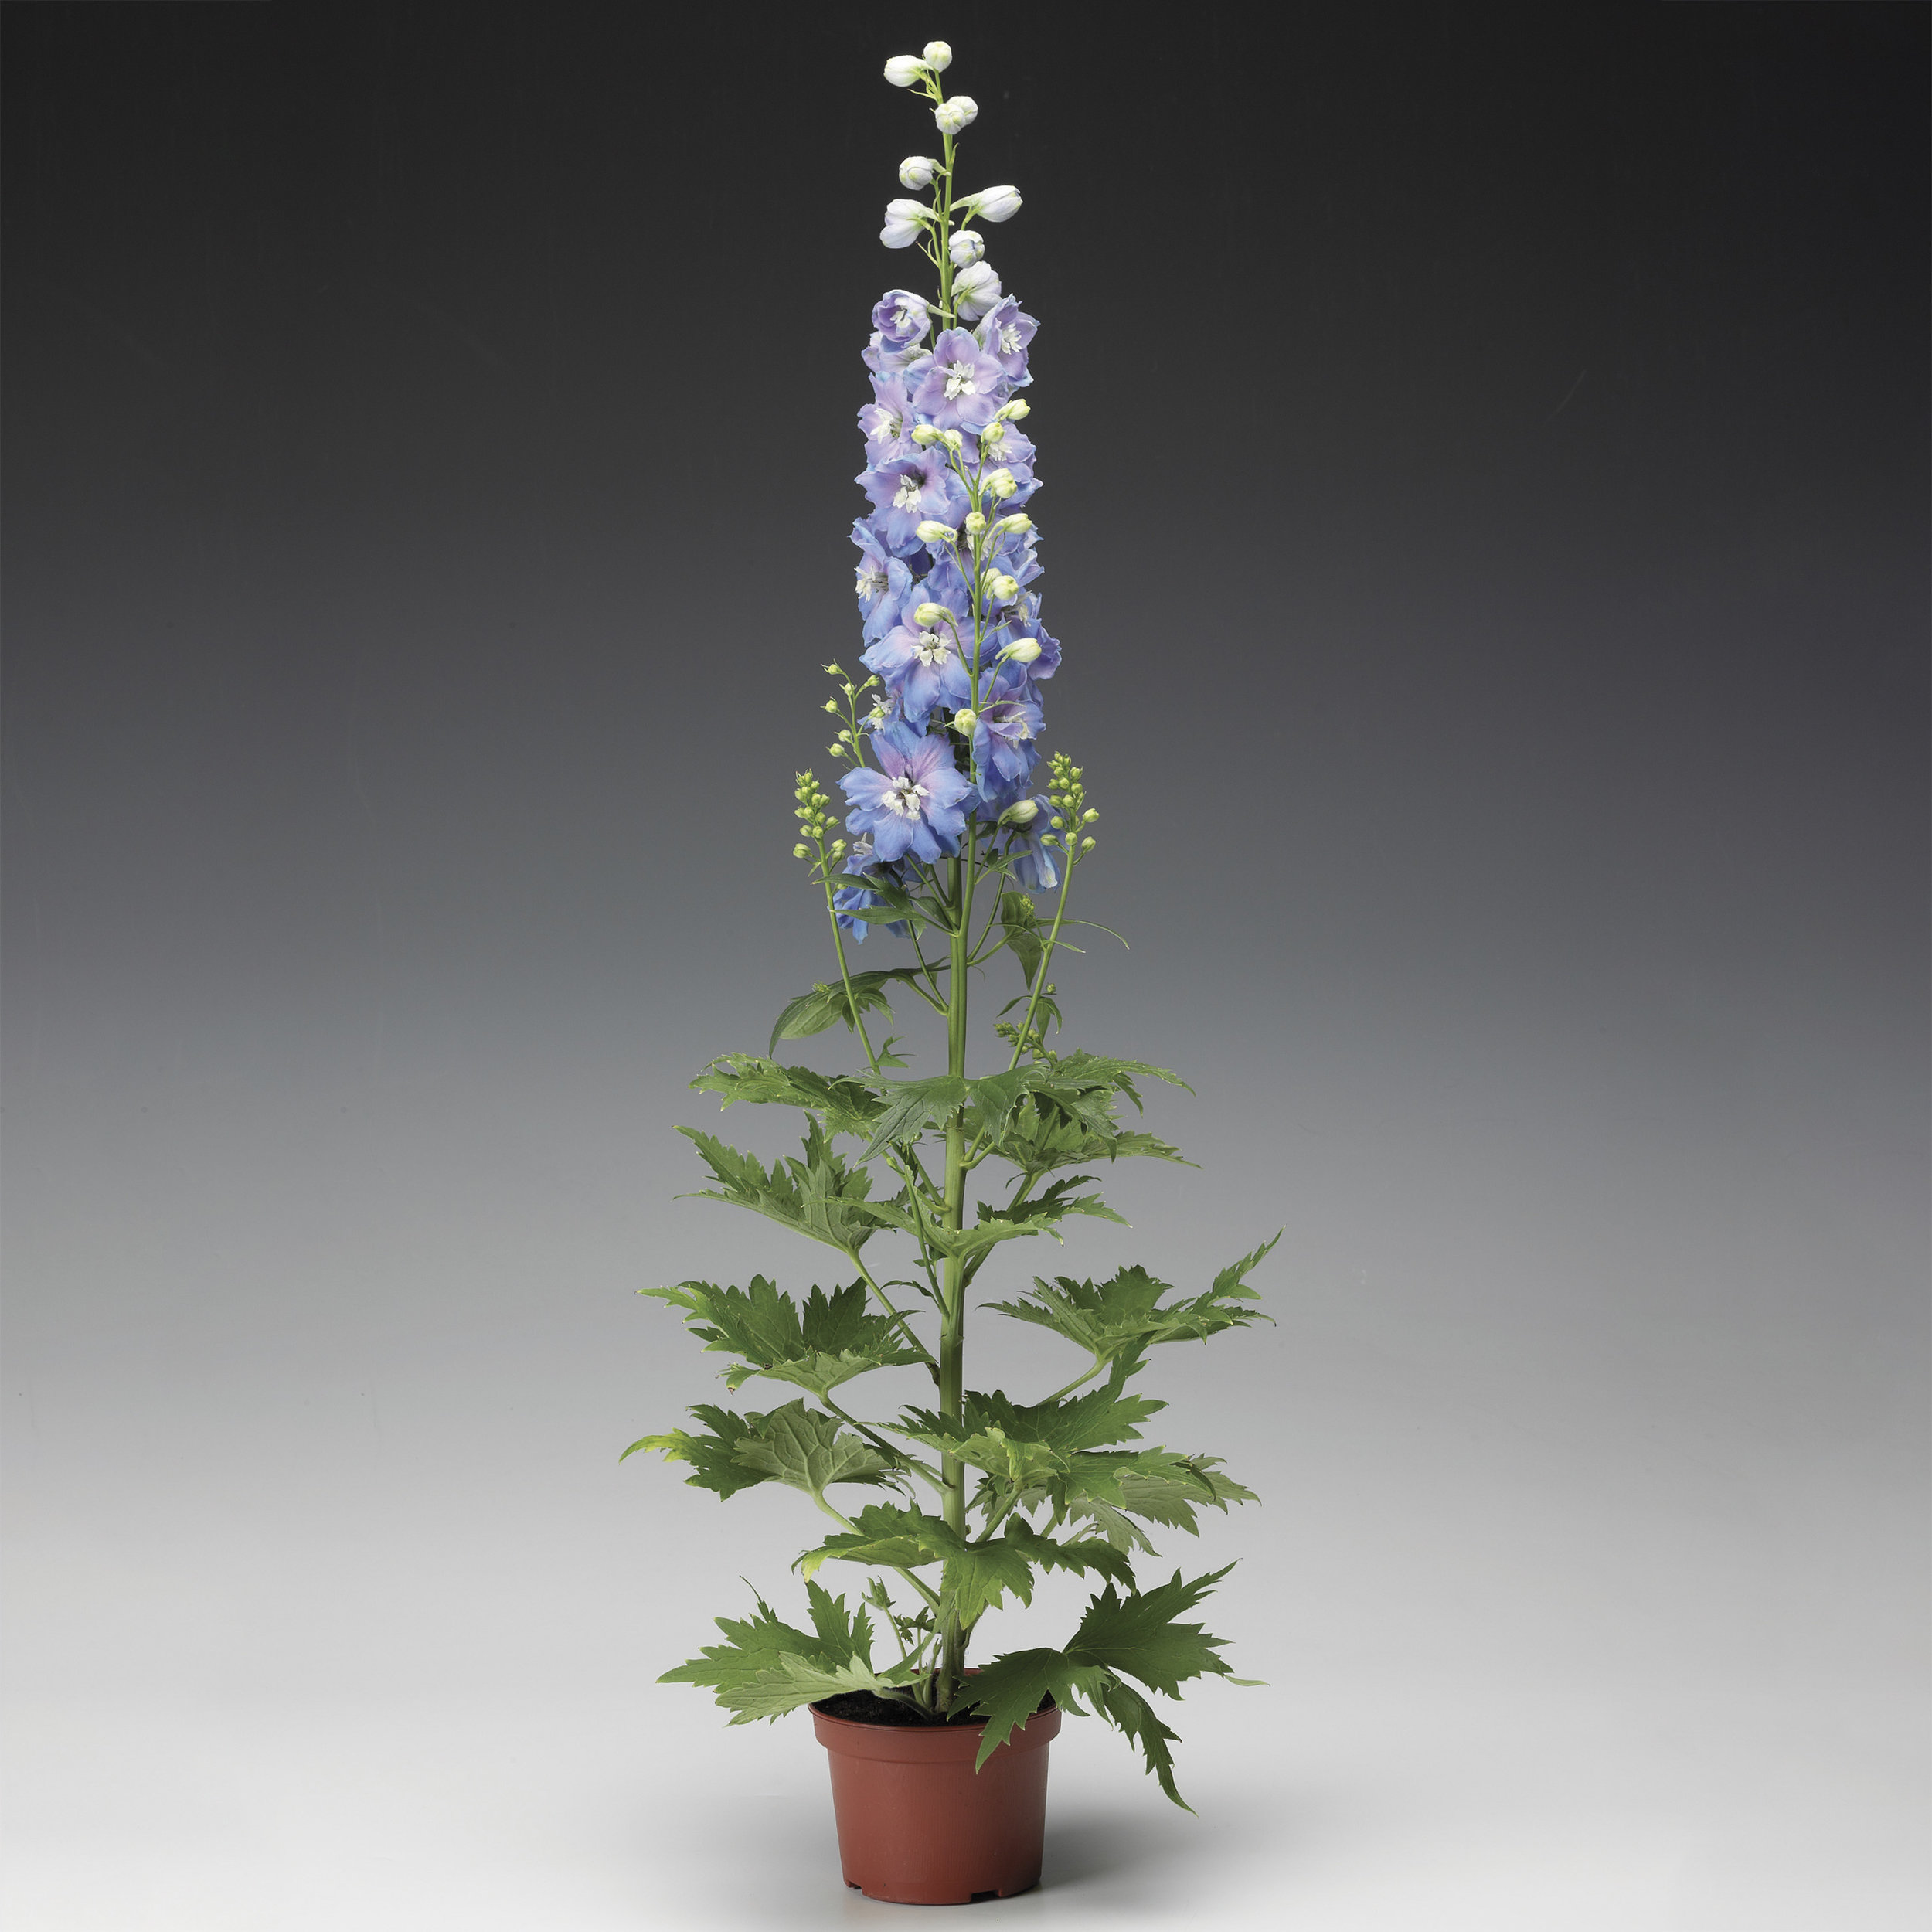 HR_Seed_Delphinium_Excalibur™_Excalibur™_Light_Blue_White_Bee_70001032_1.jpg